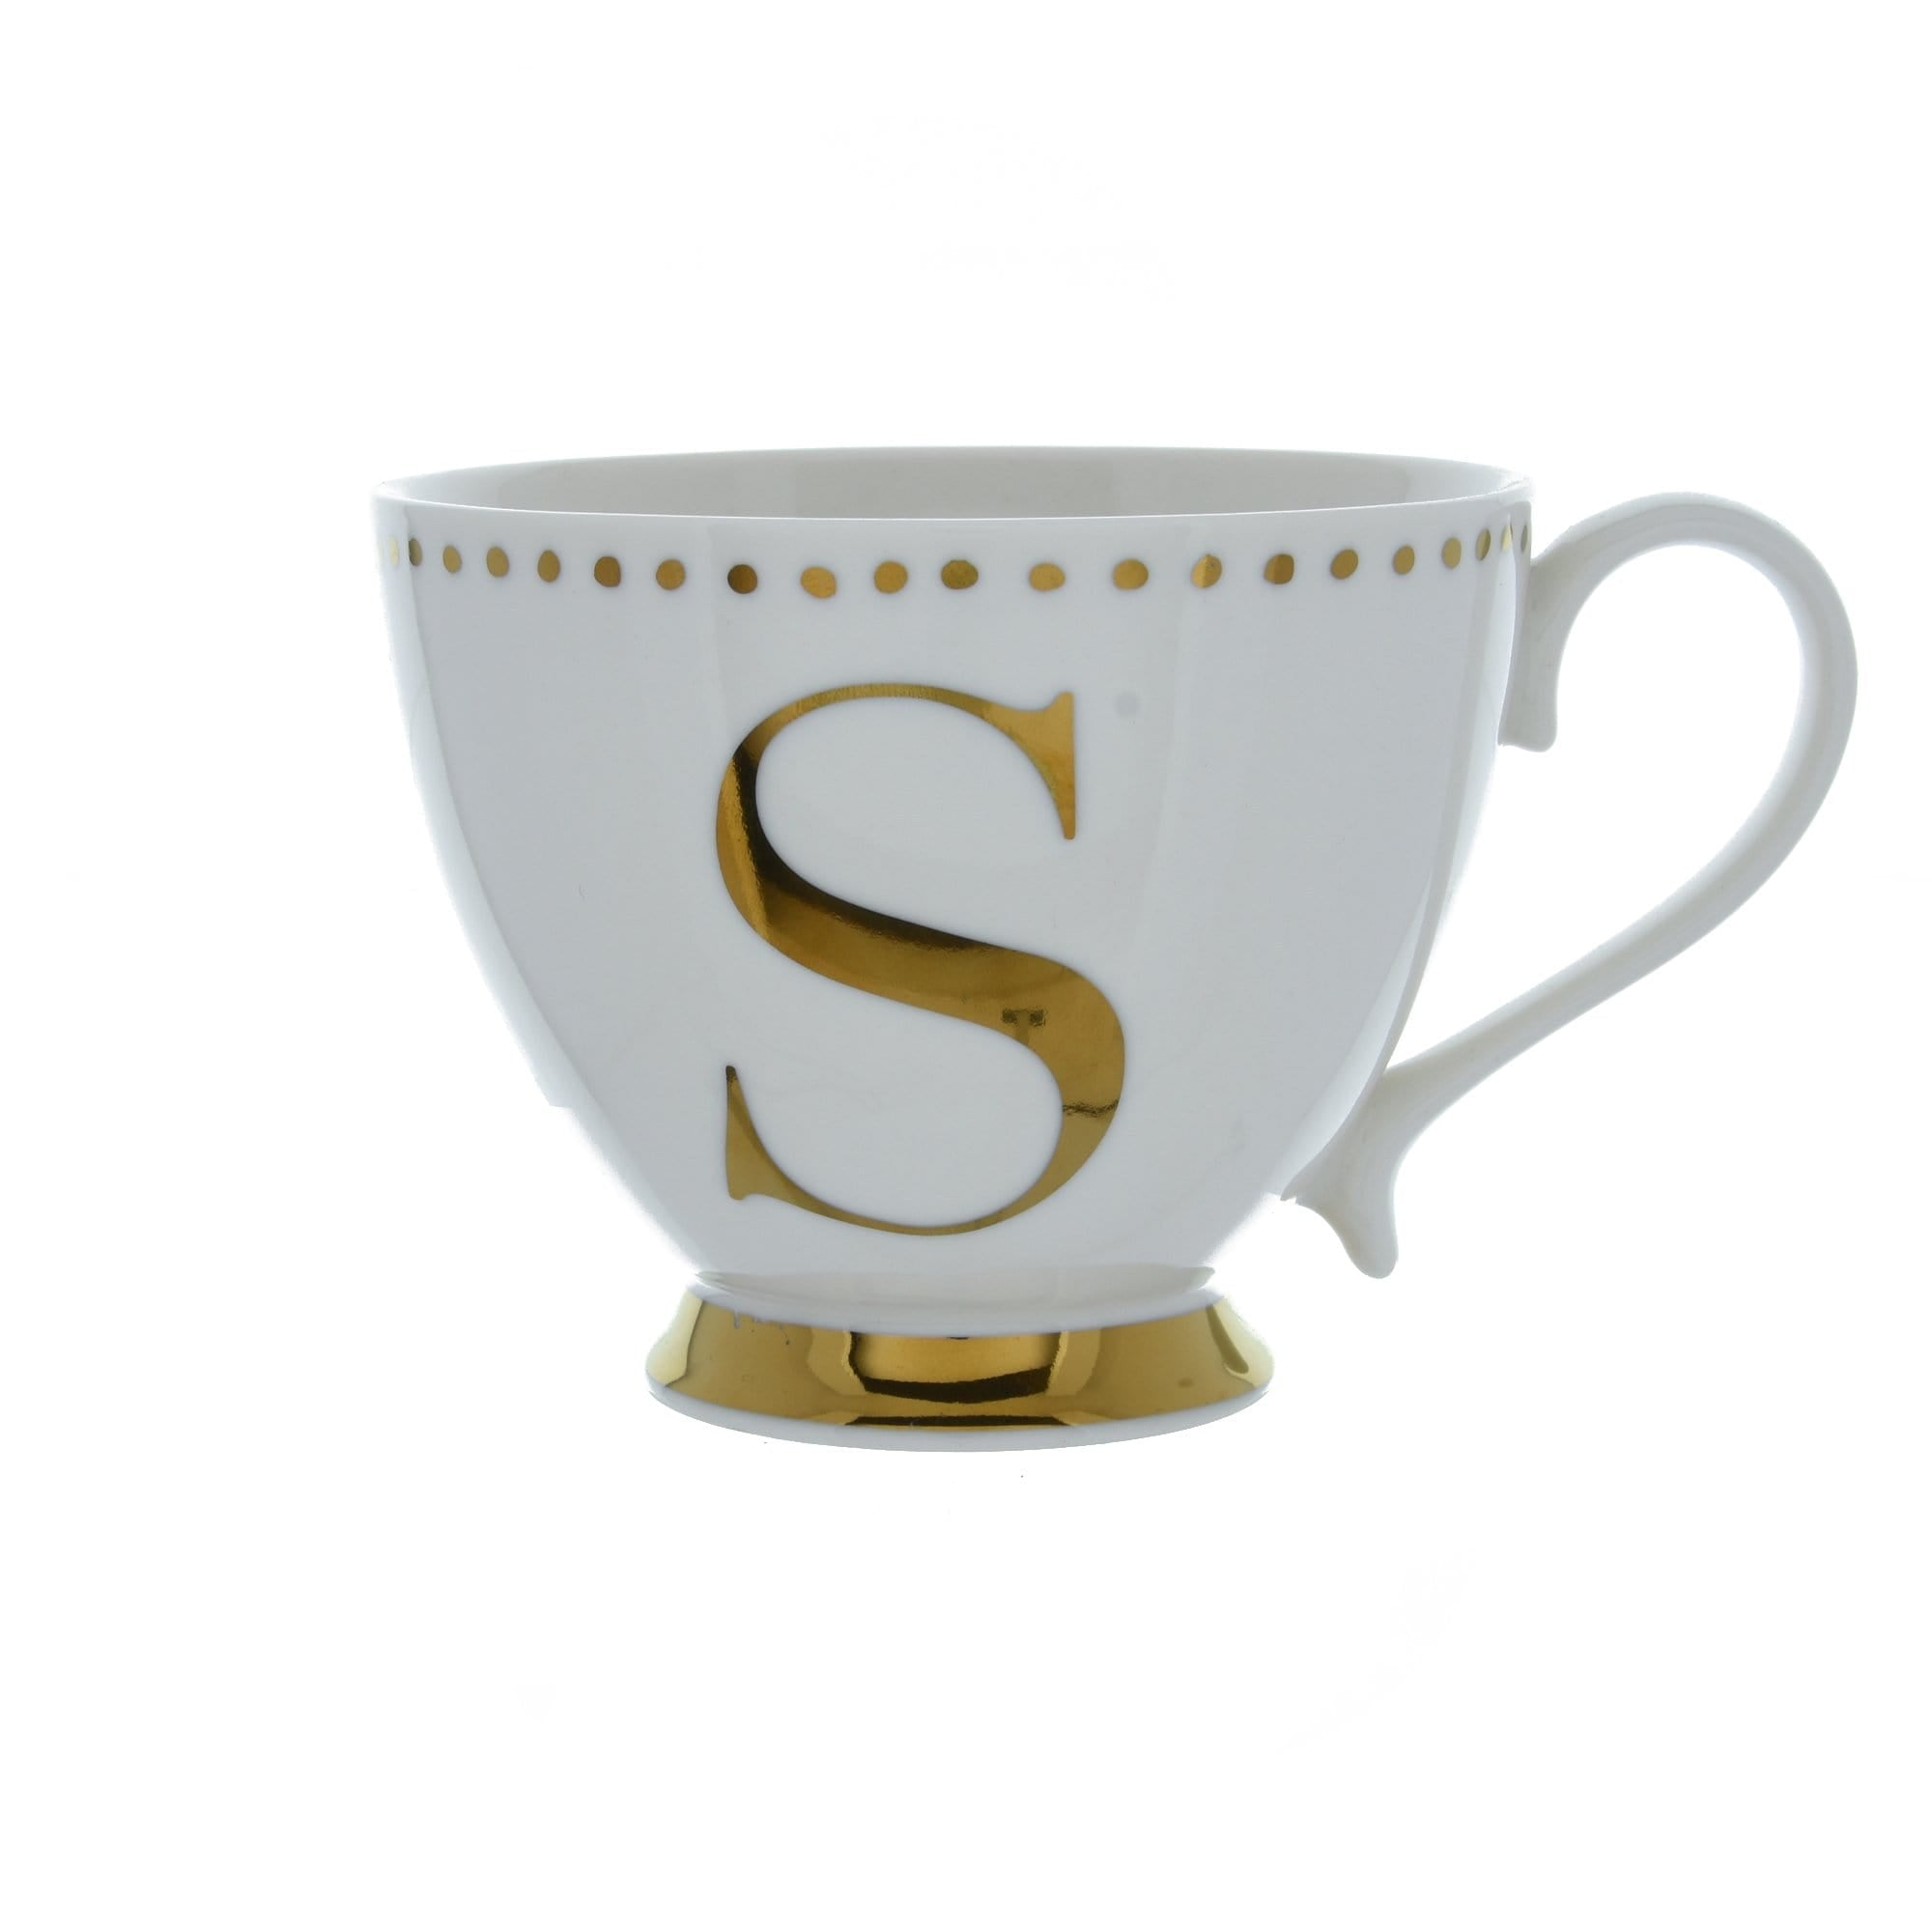 Candlelight Home Cups Initial Footed Mug S Gold Electroplated 9cm 6PK